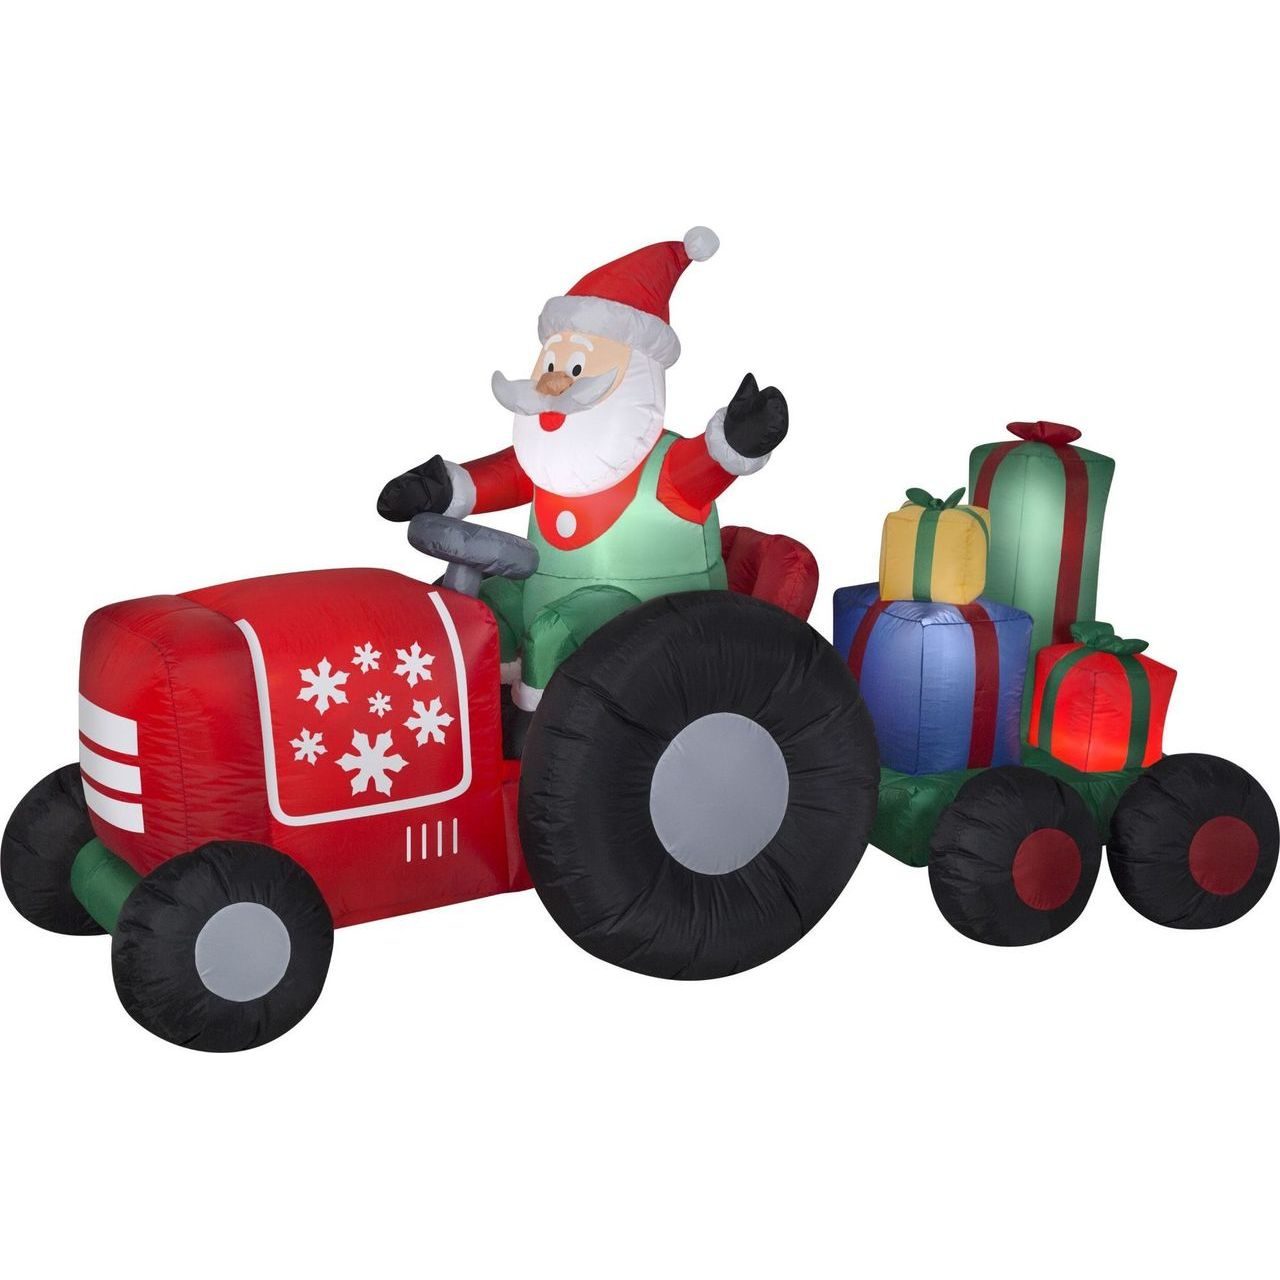 Gemmy Santa on Tractor with Presents Scene Inflatable Yard Decor